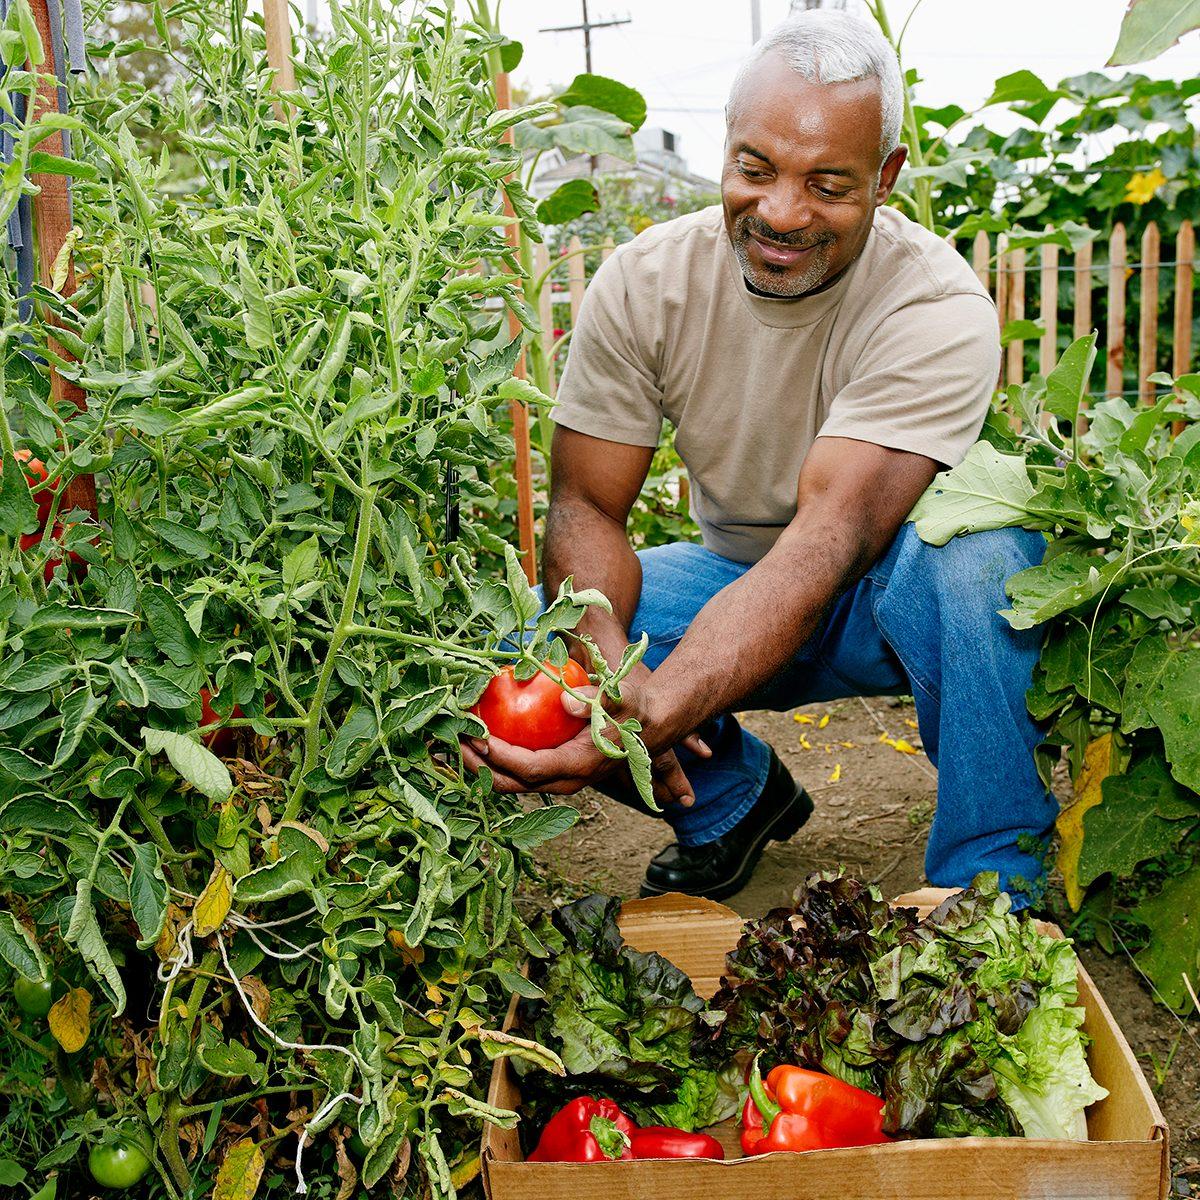 THOUGHTFUL ​ CONSUMPTION​ Food Trends Report, Black man gathering vegetables in community garden